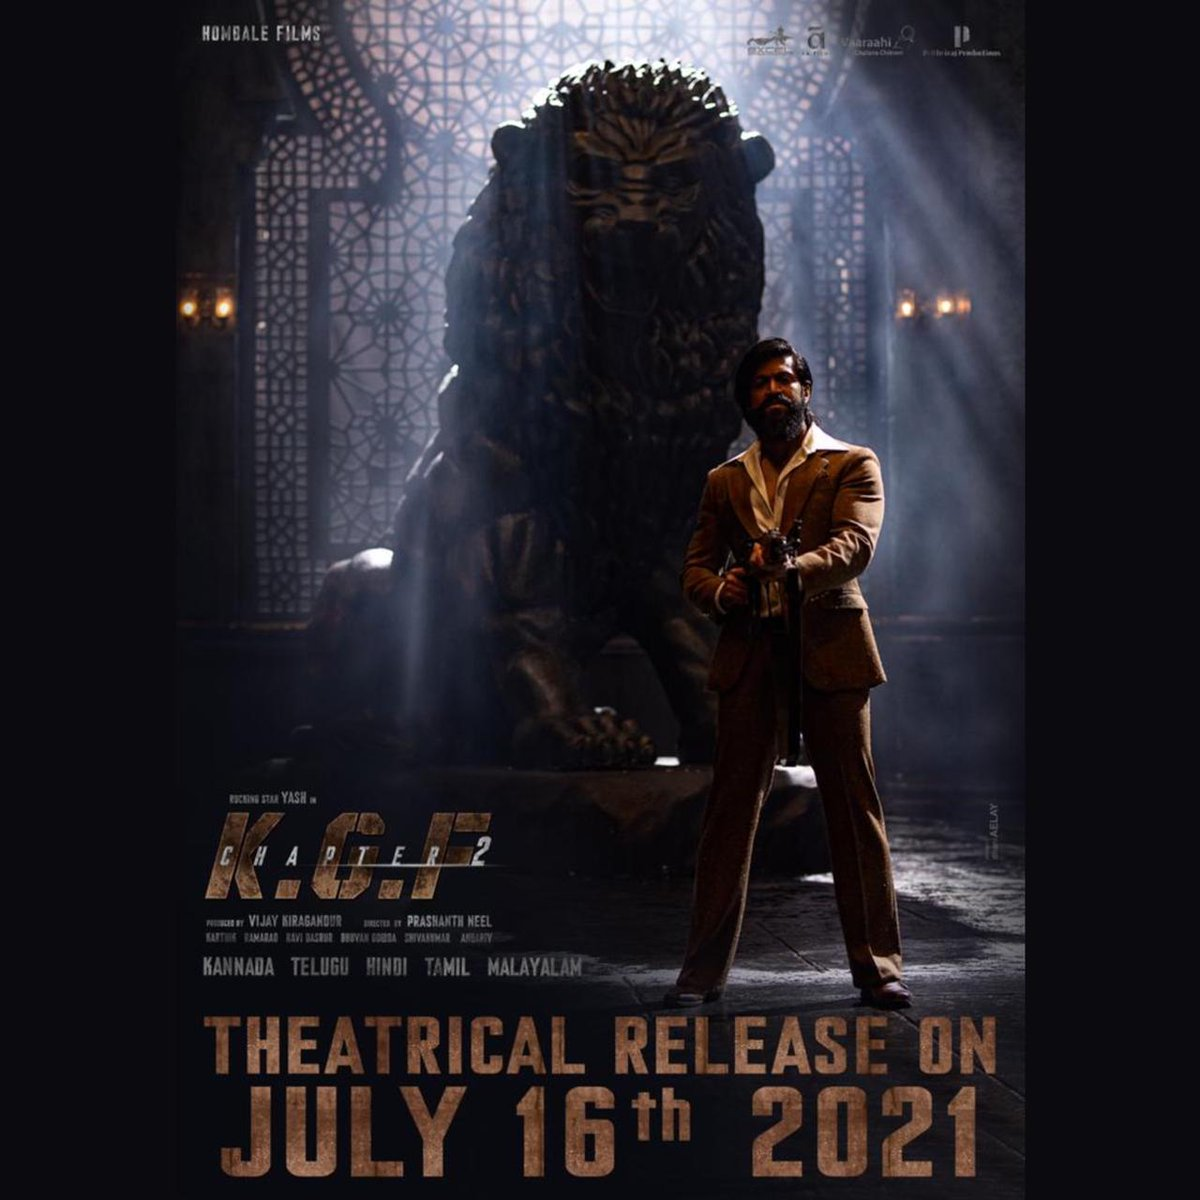 #KGFChapter2 Worldwide Theatrical Release On July 16th, 2021.  #KGFChapter2onJuly16  @TheNameIsYash @prashanth_neel @VKiragandur @hombalefilms @excelmovies @duttsanjay @TandonRaveena @SrinidhiShetty7 @prakashraaj @BasrurRavi @bhuvangowda84